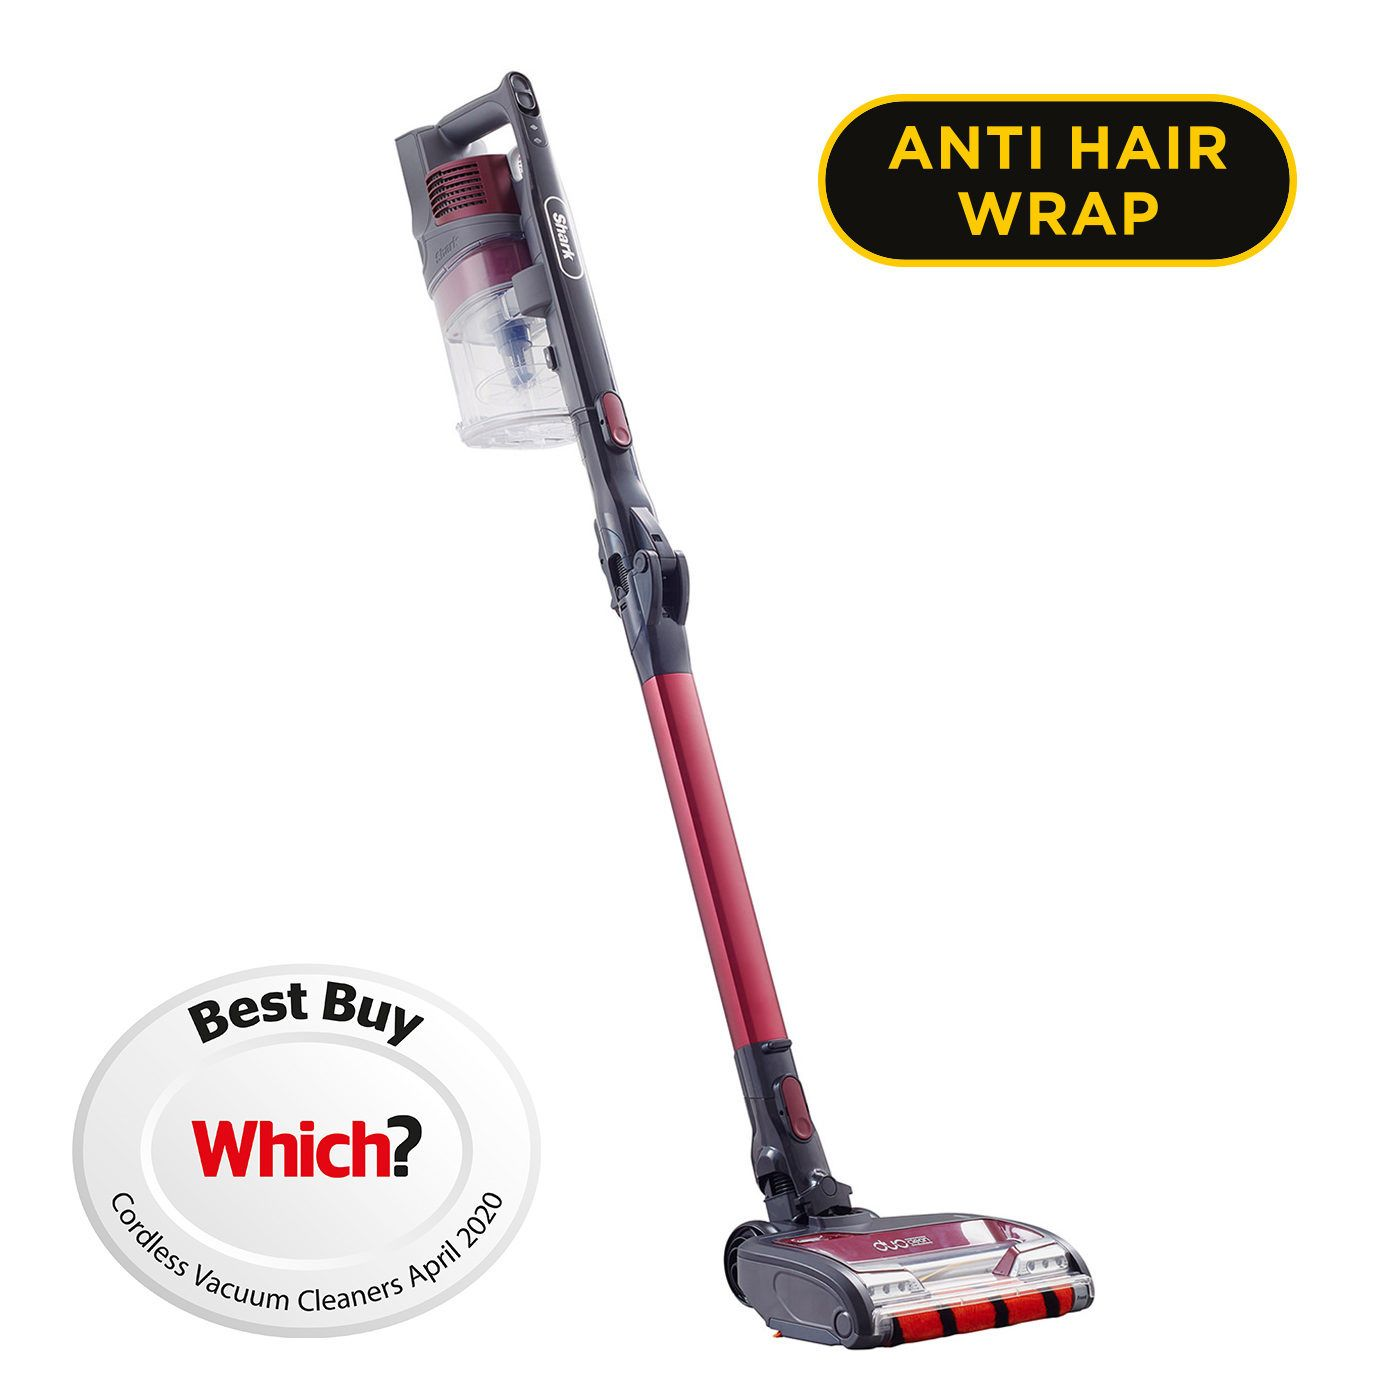 Shark Anti Hair Wrap Cordless Stick Vacuum Cleaner with